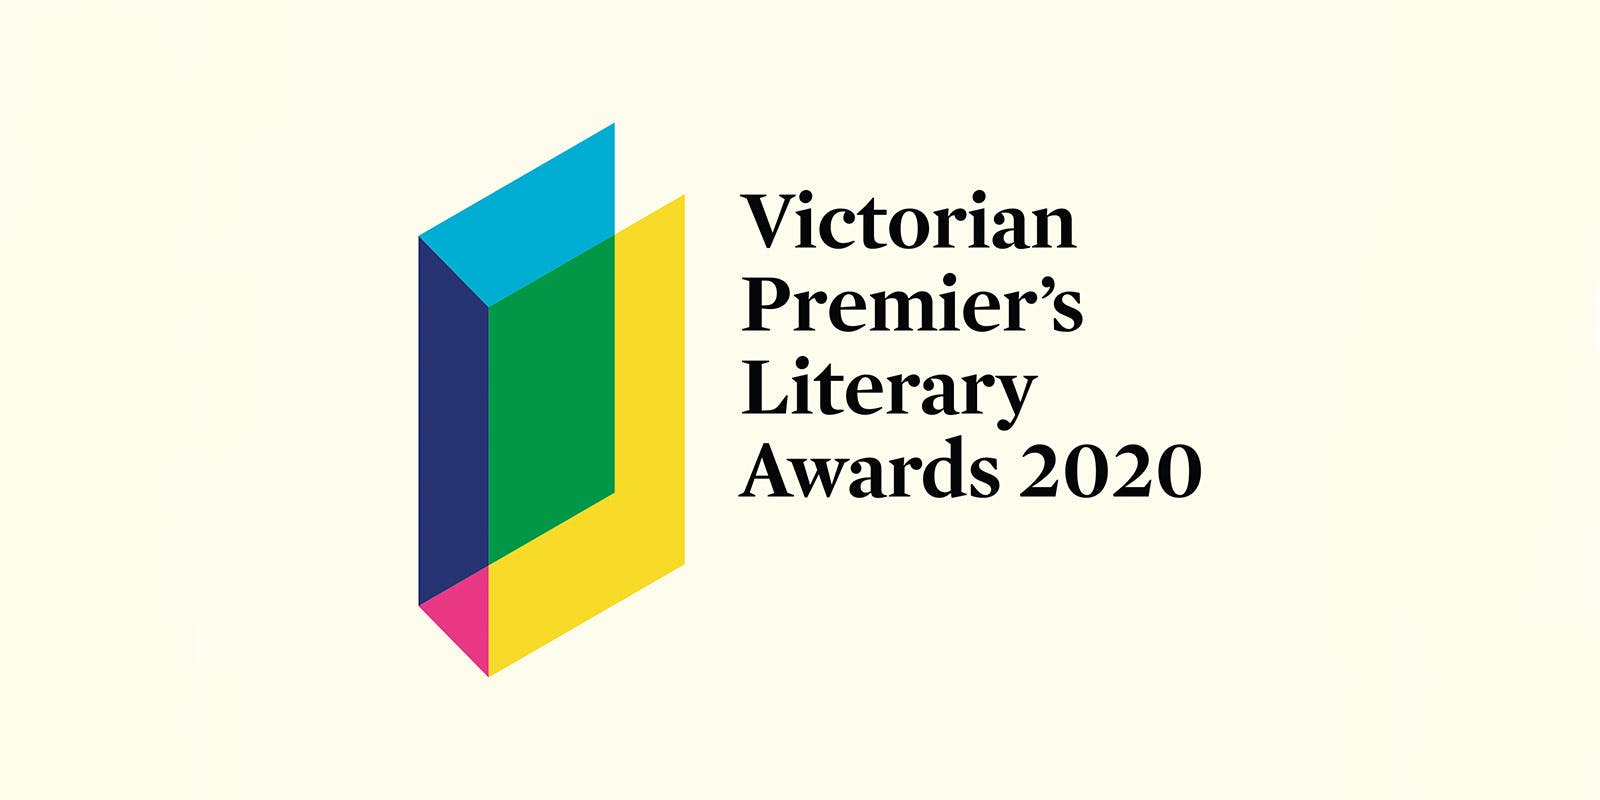 The Yield shortlisted for the Victorian Premier's Literary Awards 2020